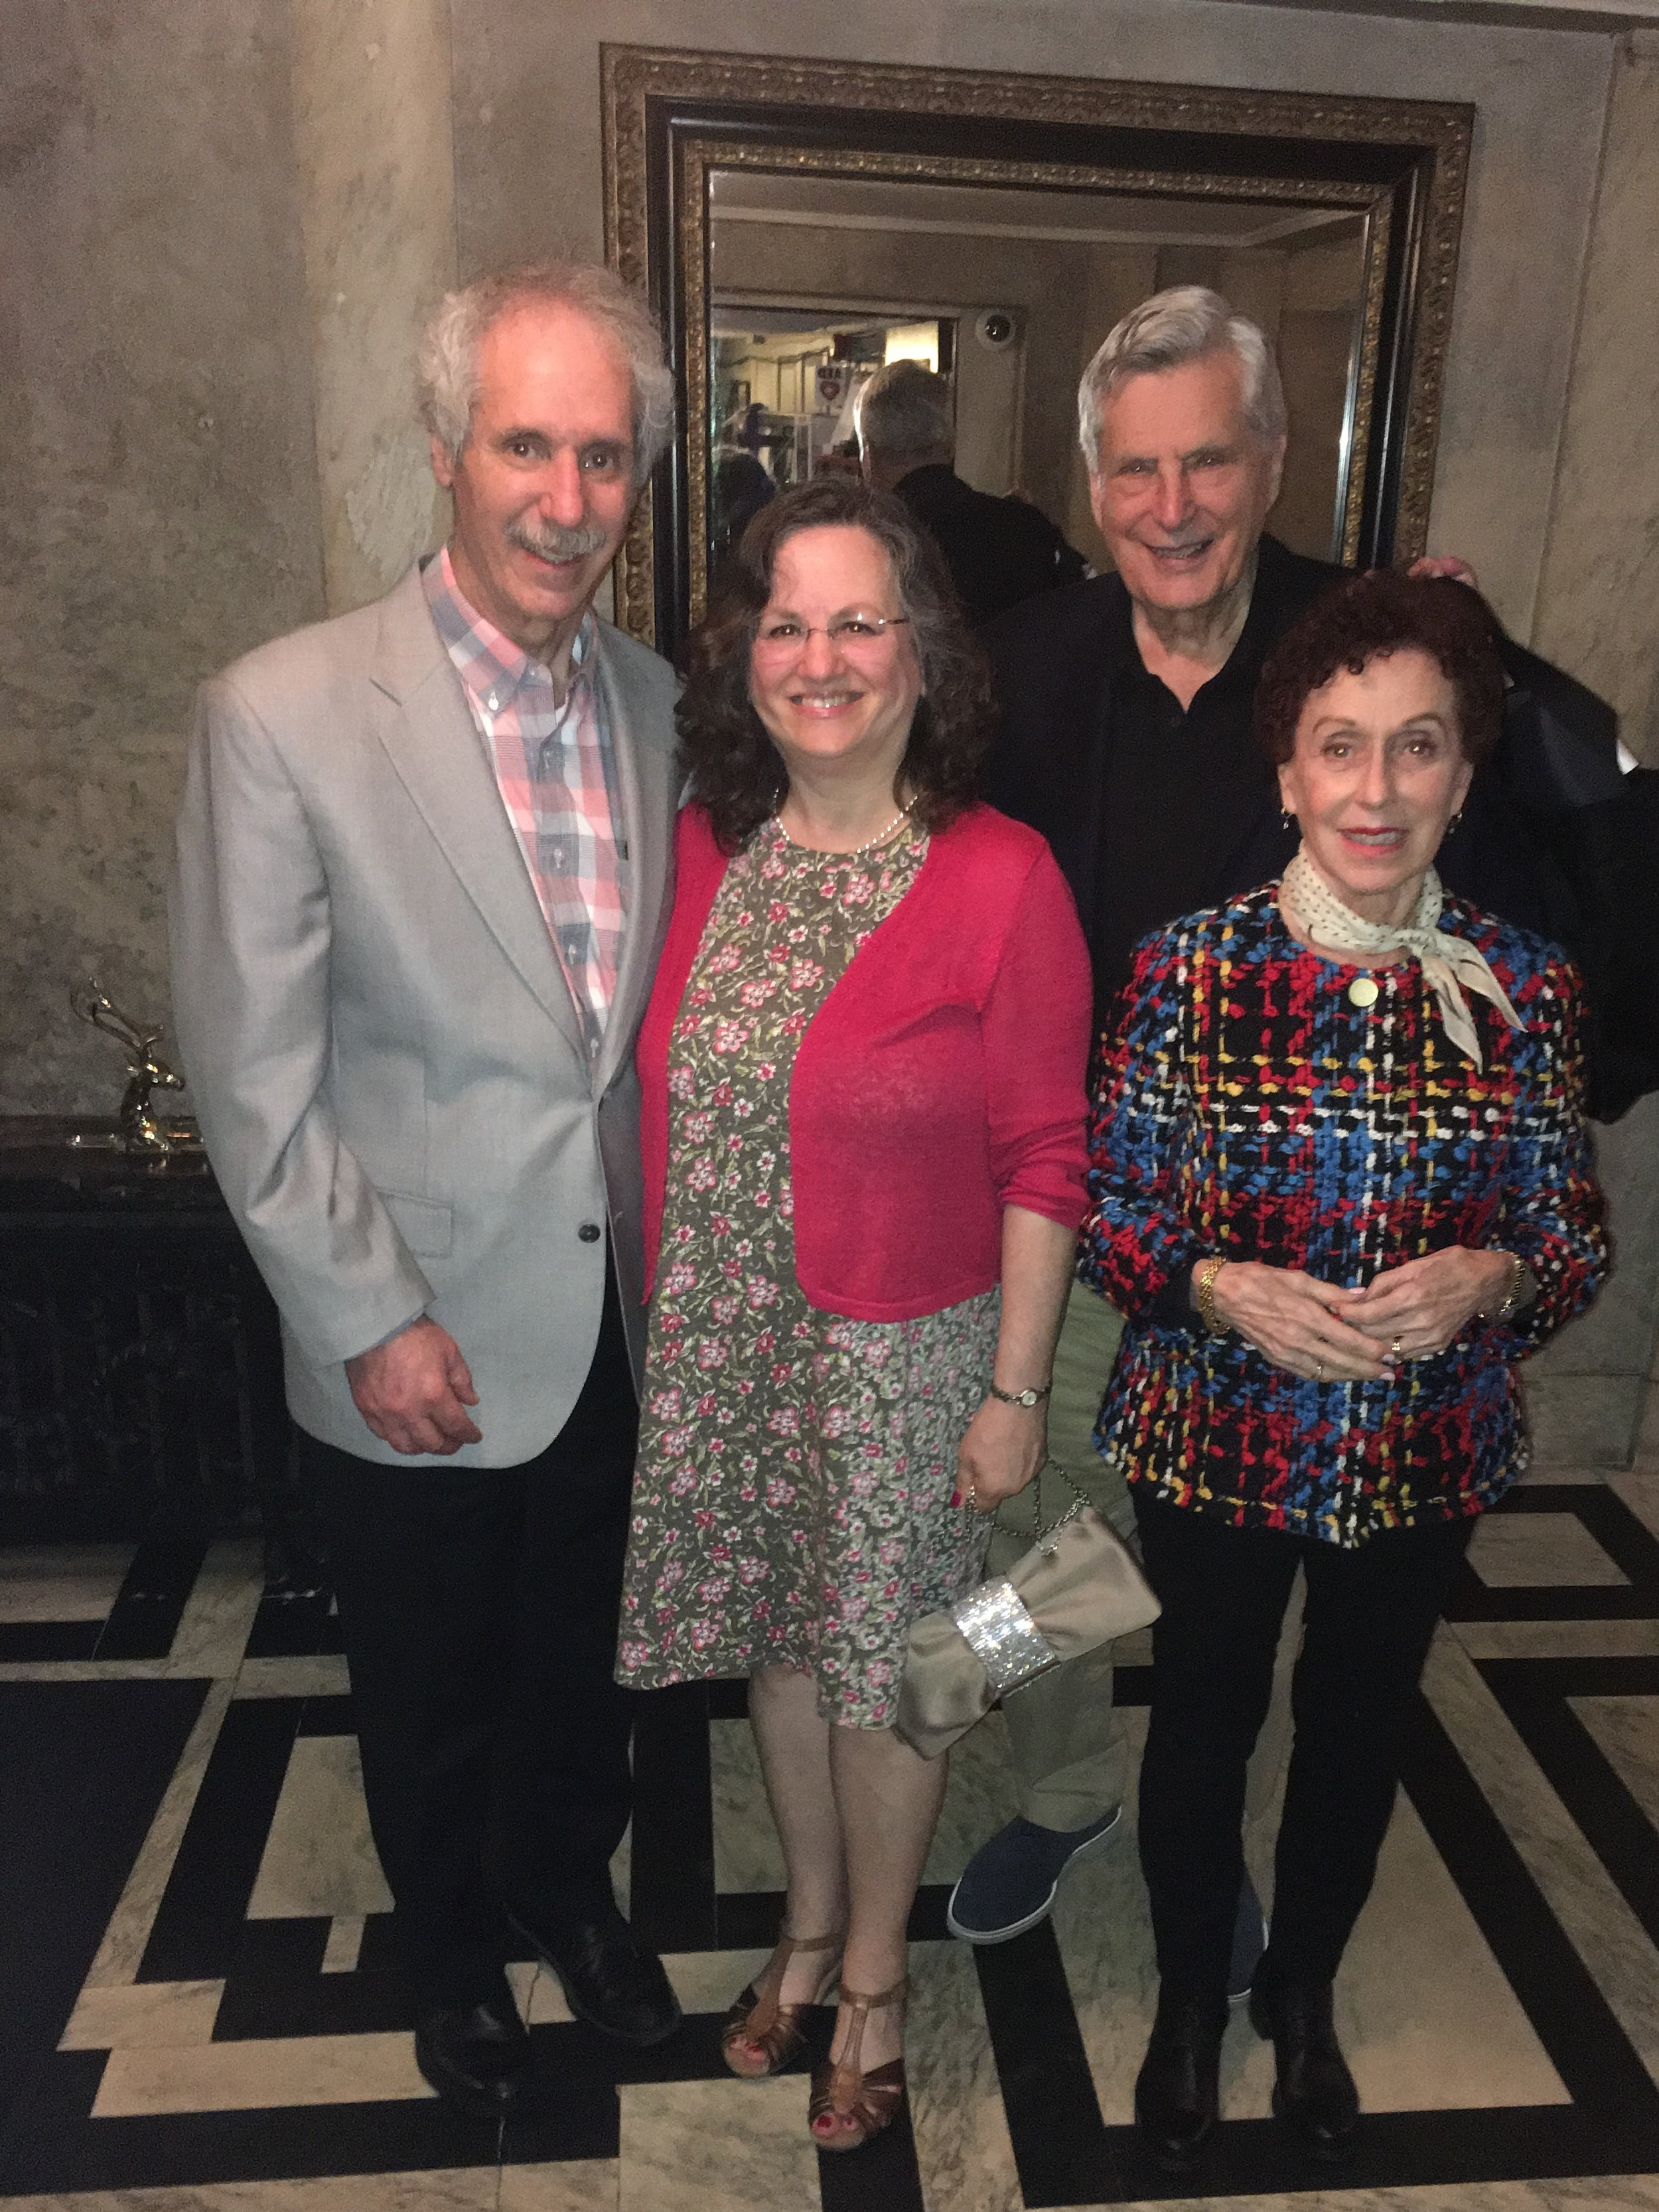 Arnee and Sharon with Alan and Sandy Siegel at the National Arts Club on May 17, 2018-our last get- together